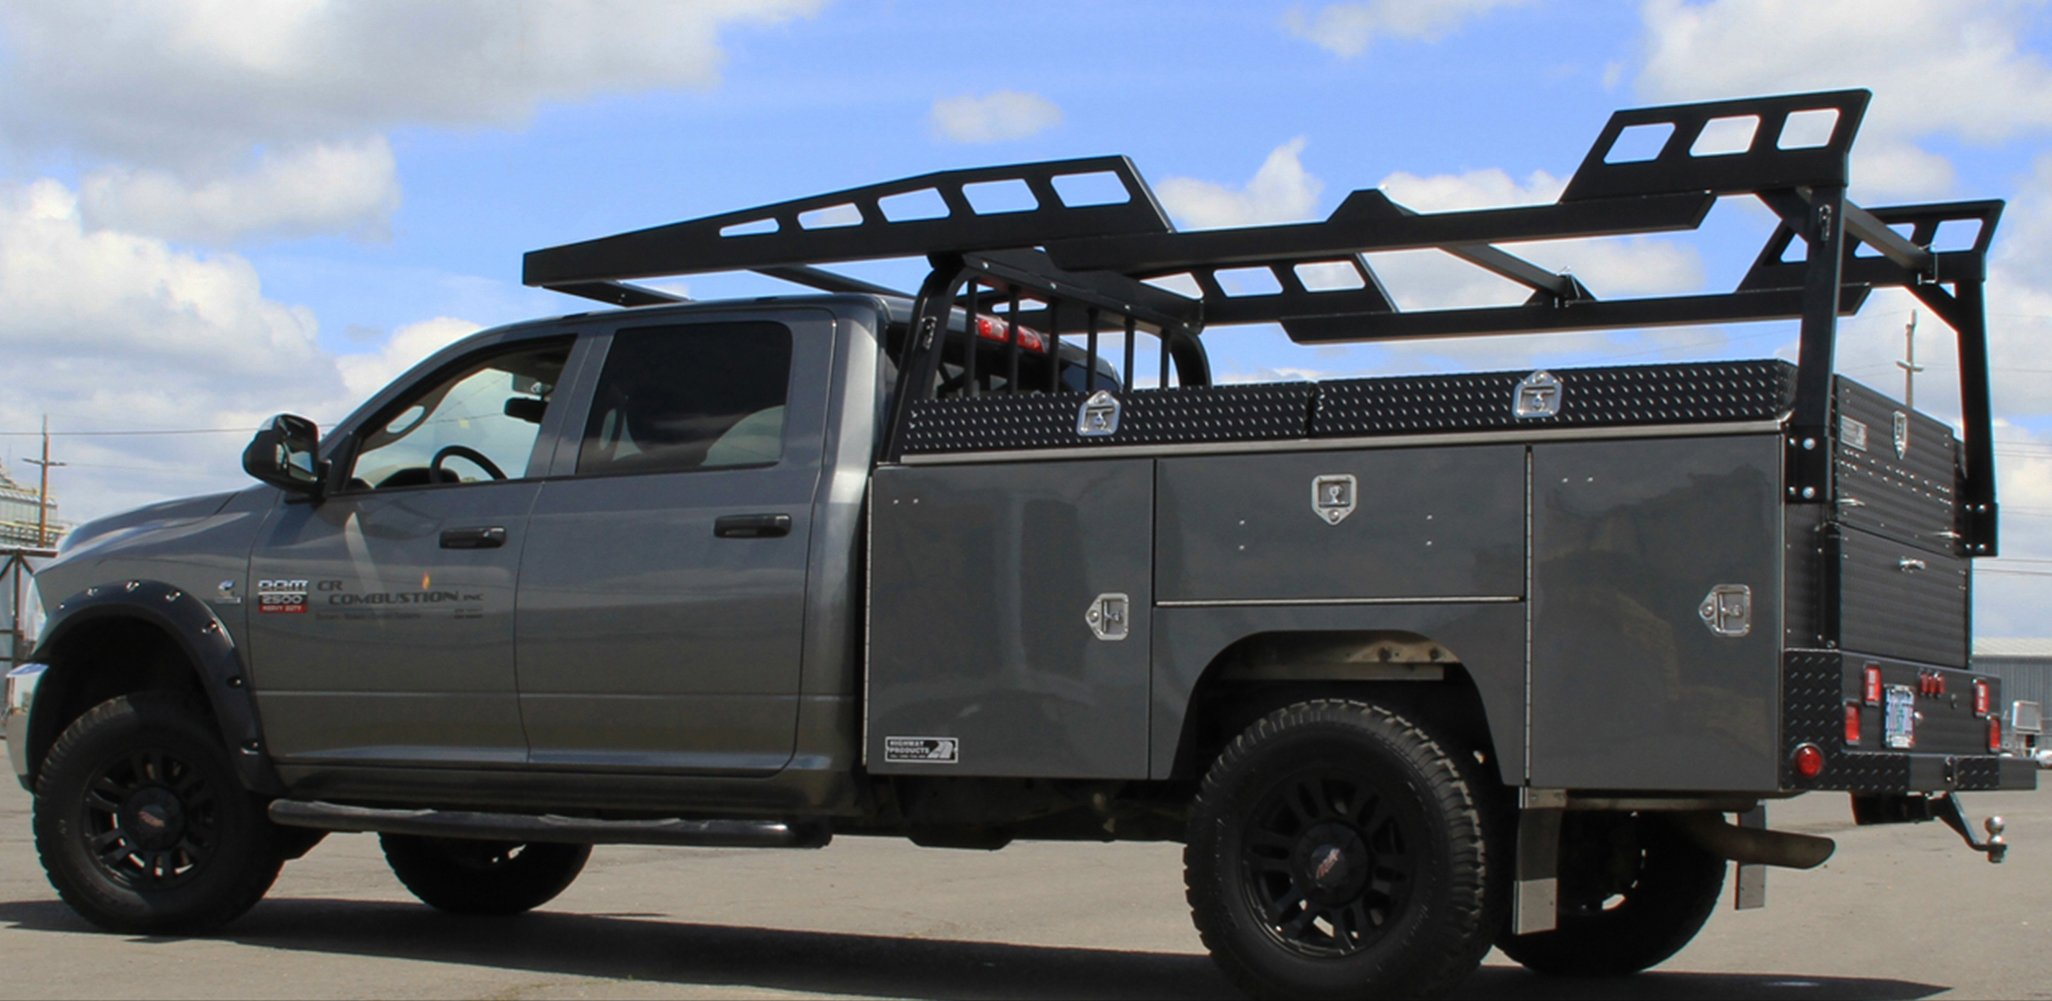 Aluminum Service Bodies - Operations - Work Truck Online